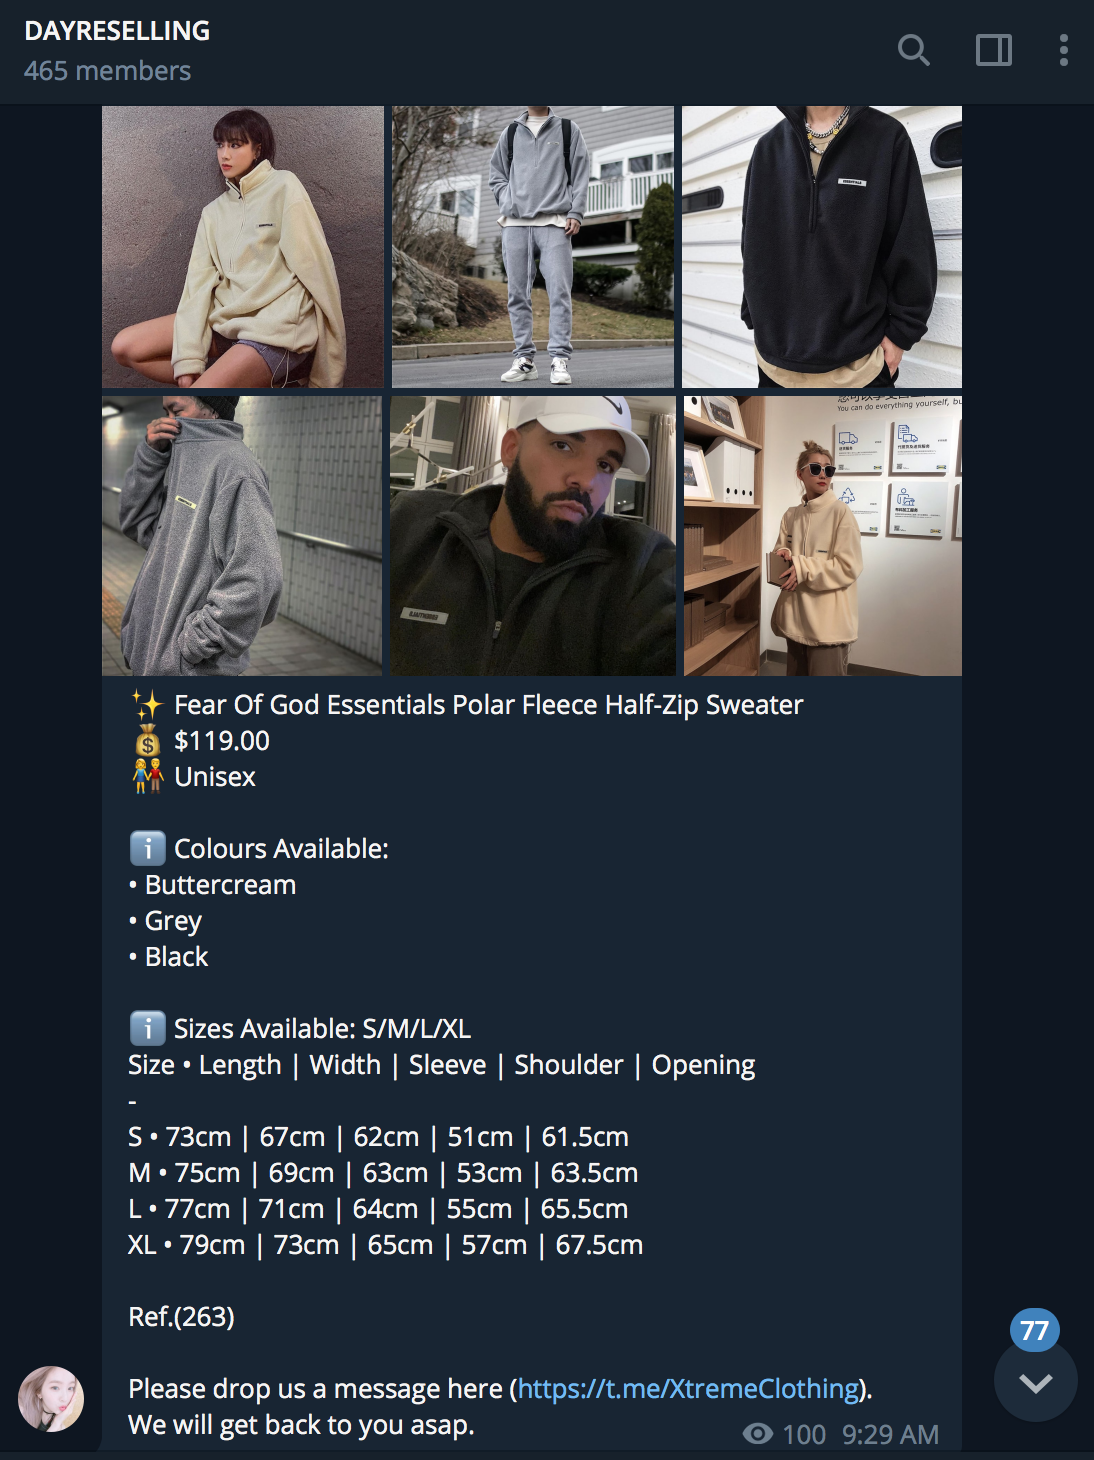 dayreselling hype clothing listing